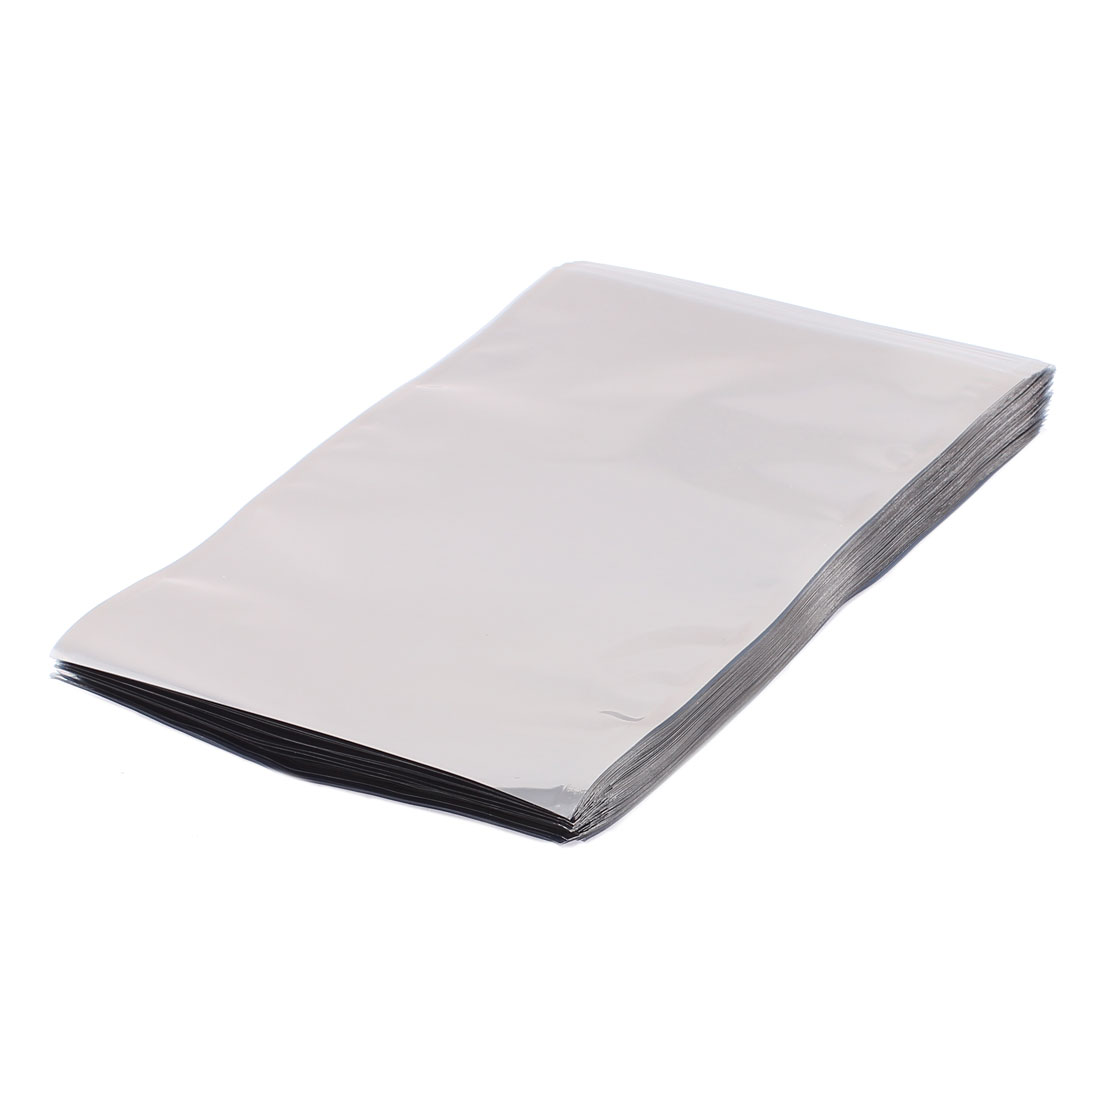 100 Pcs 155mm x 230mm Silver Tone Flat Open Top Anti Static Bag For Electronics